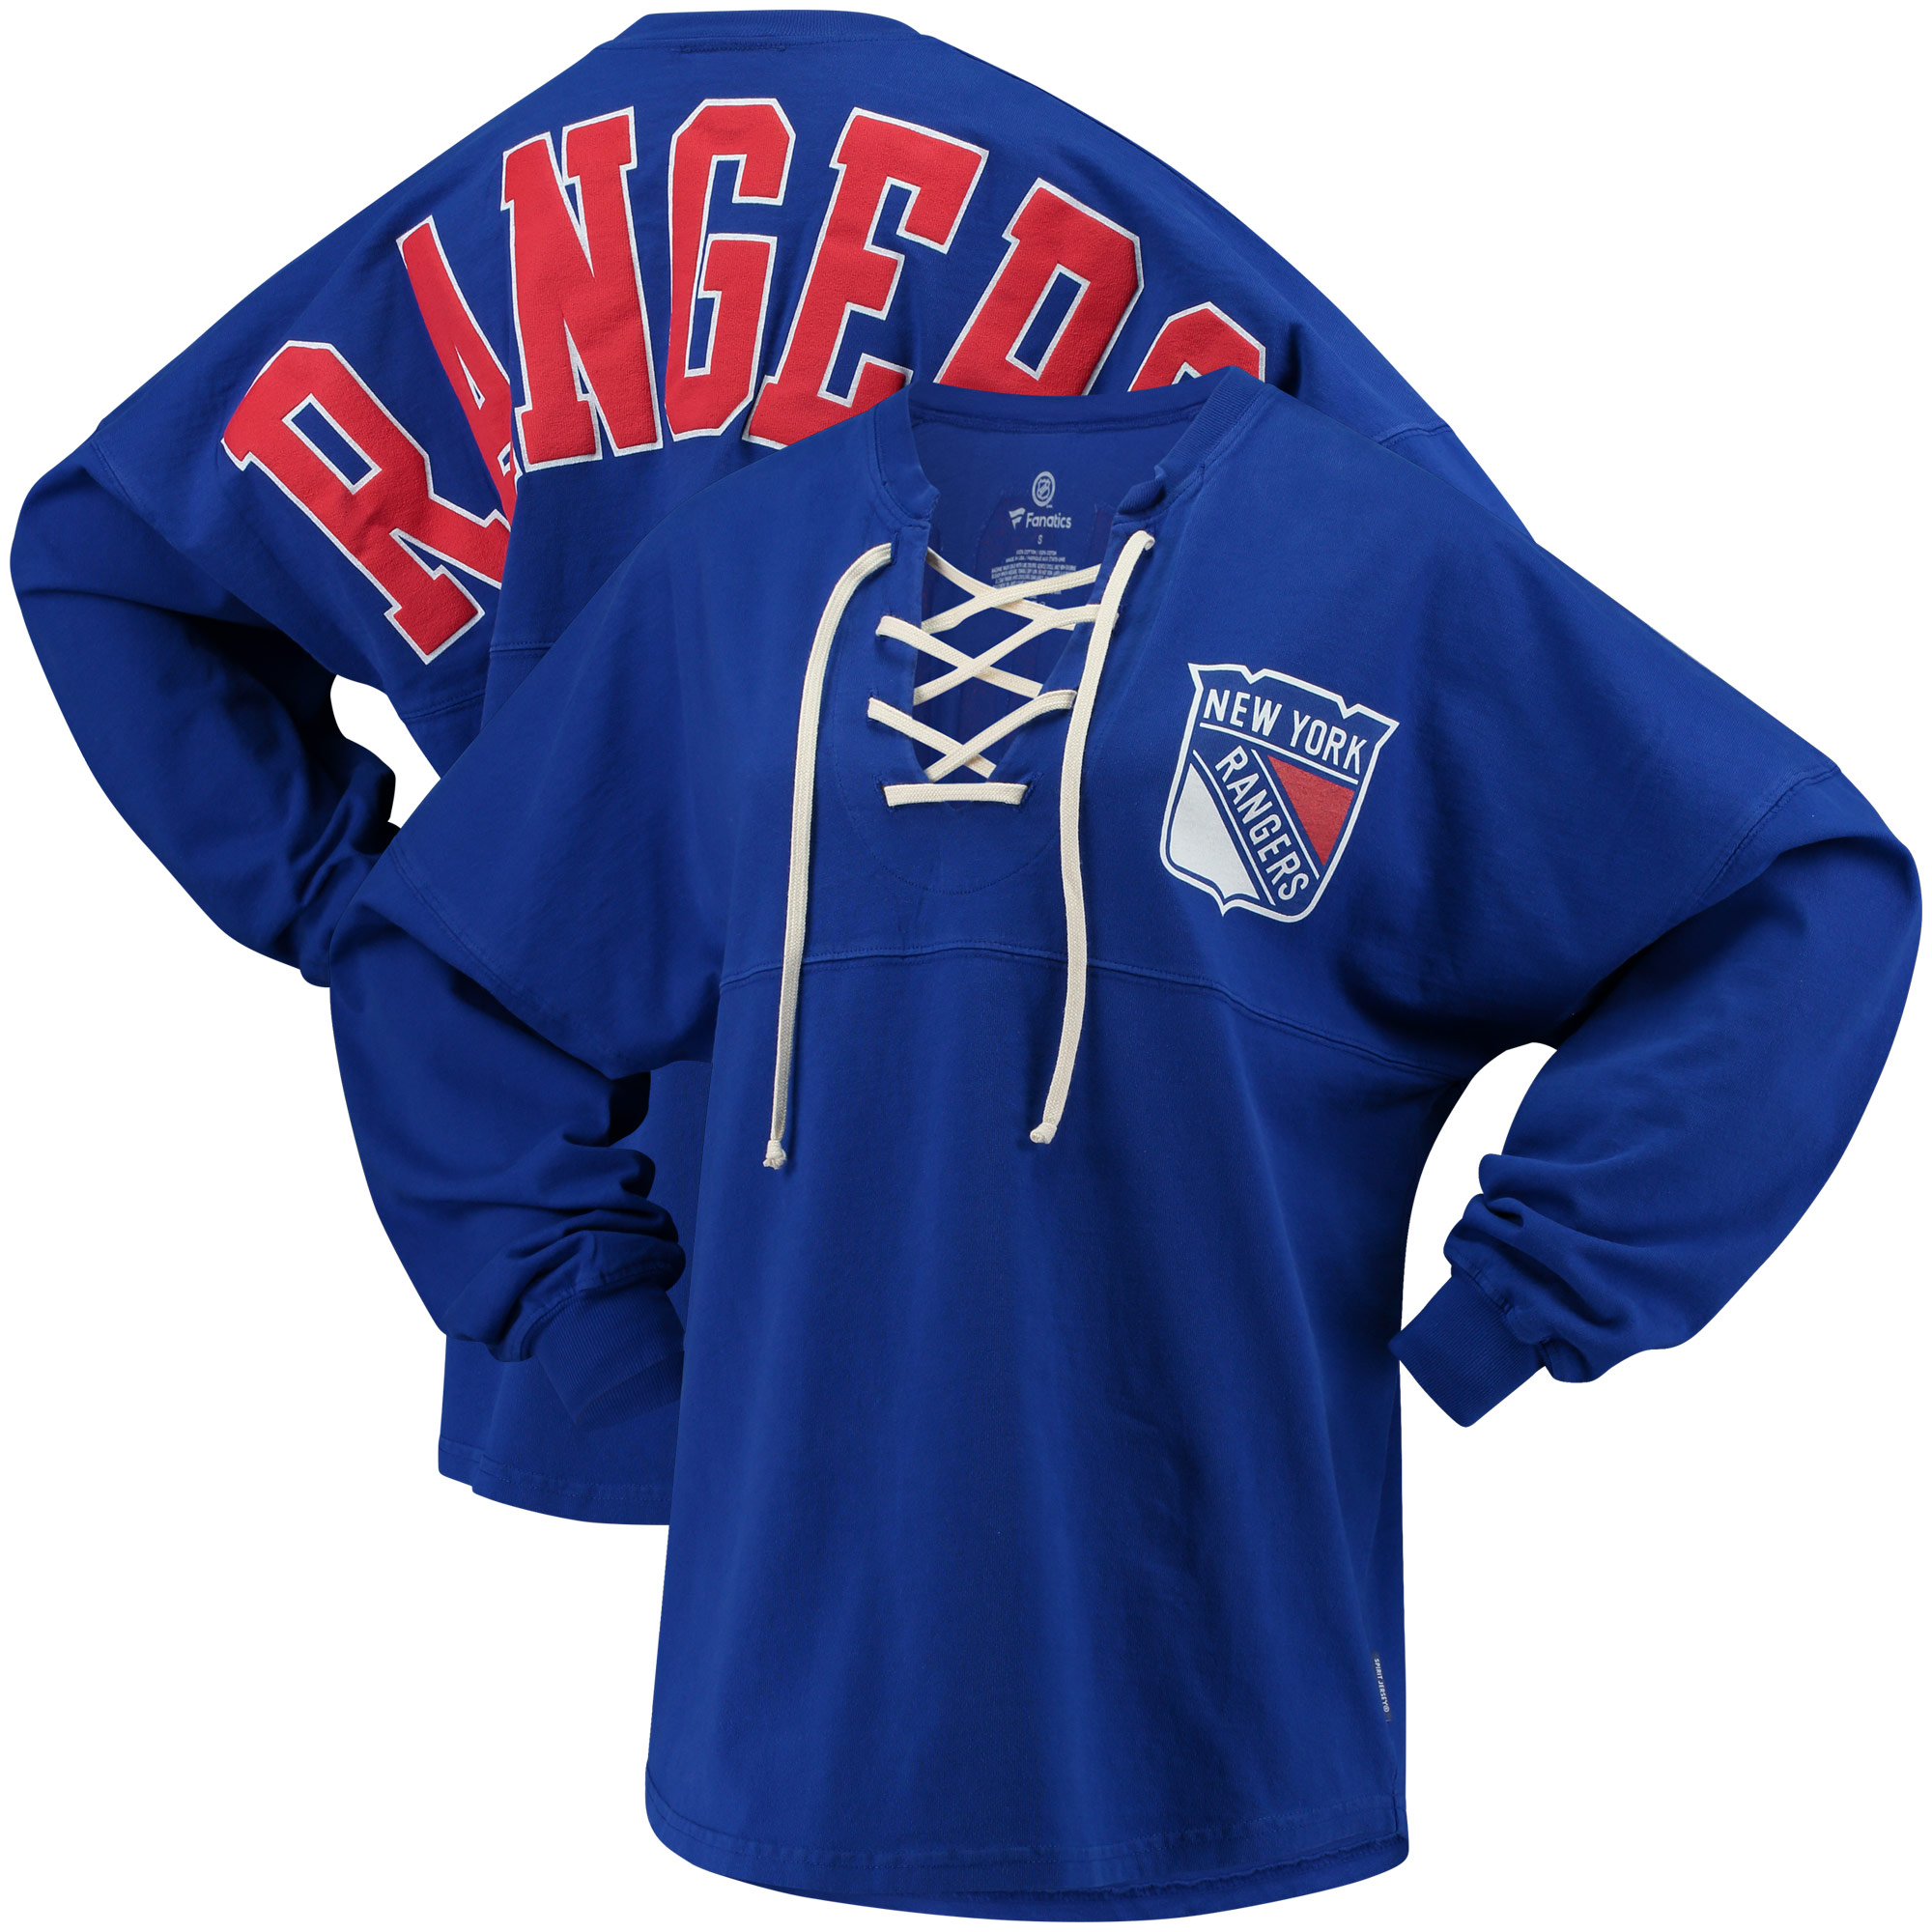 New York Rangers Fanatics Branded Women's Lace Up Long Sleeve Spirit T-Shirt Blue by BoxSeat Clothing - SOURCED